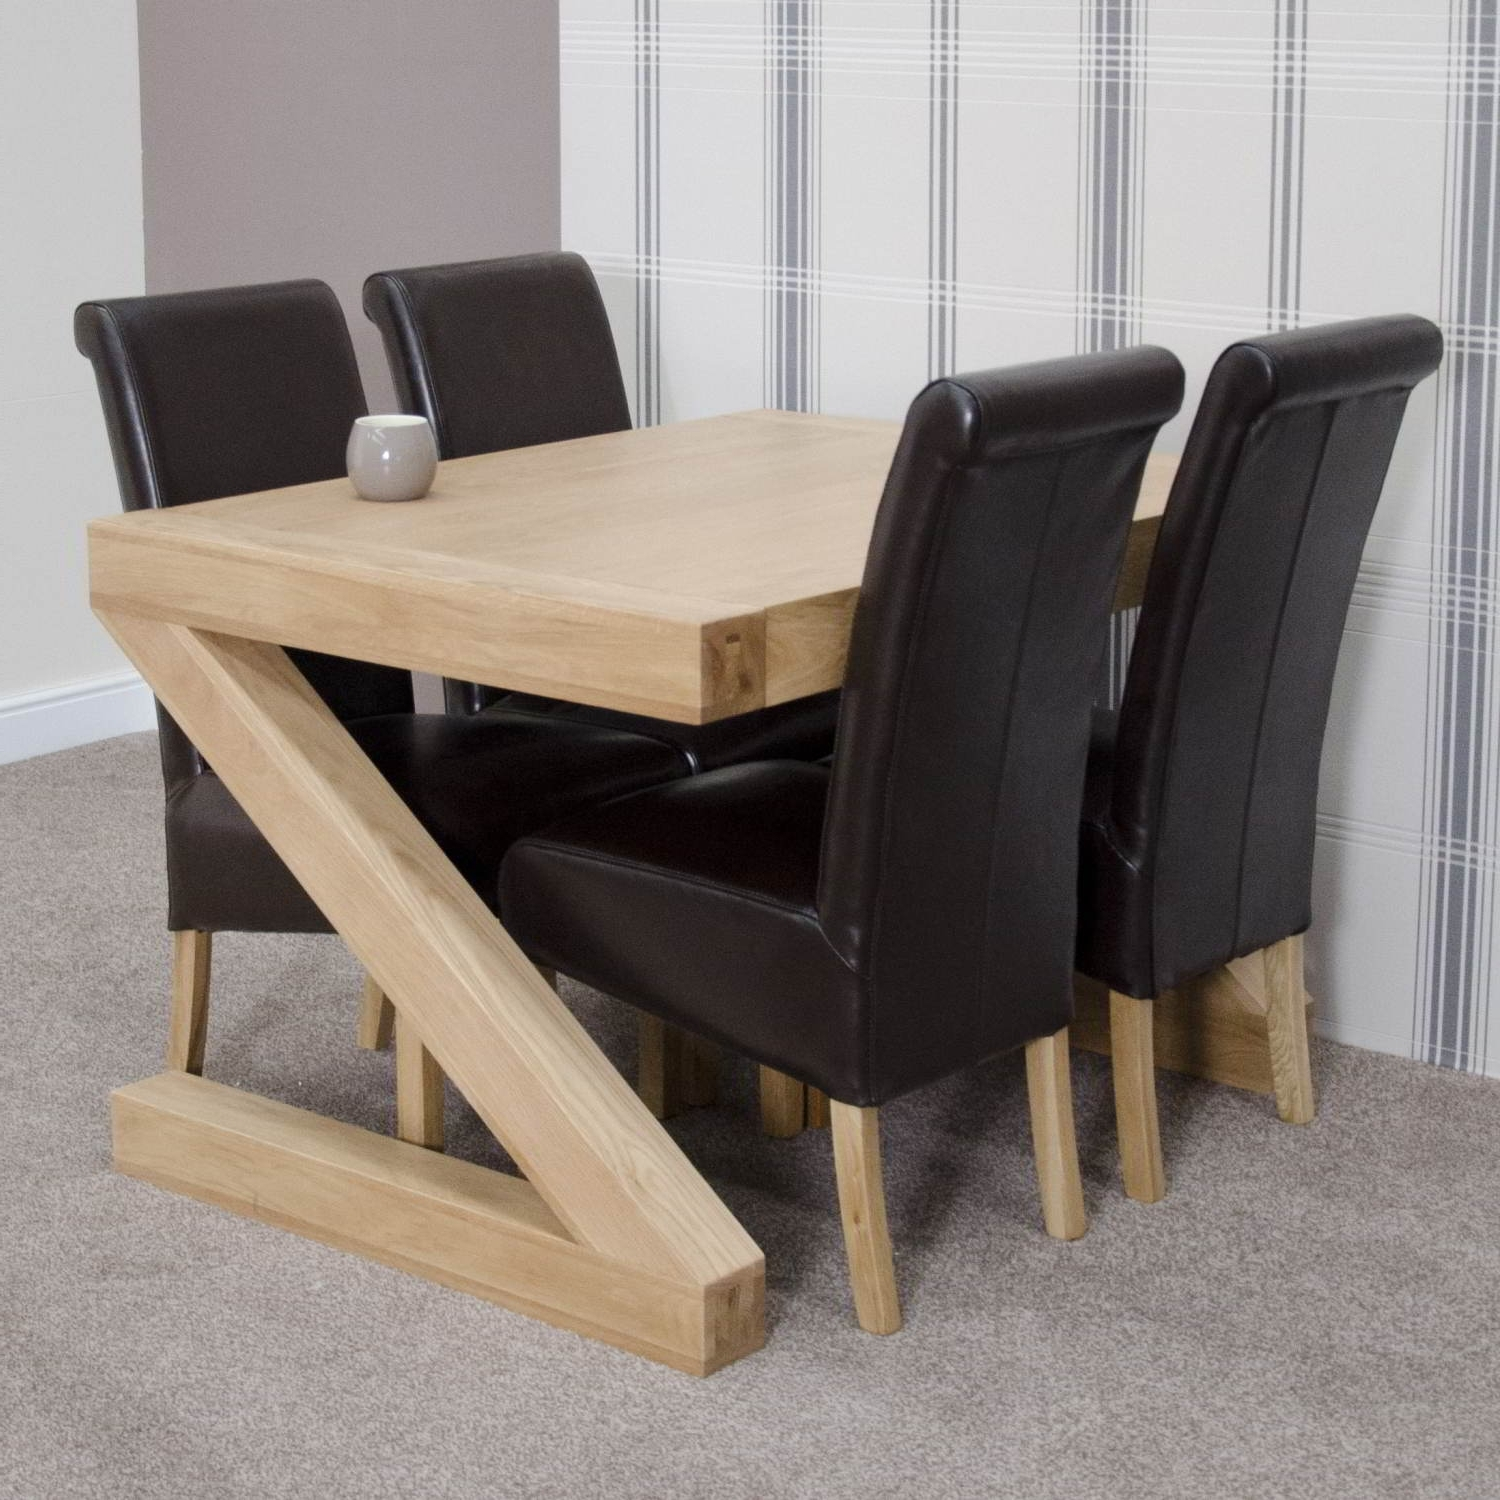 4 Seat Dining Tables regarding Fashionable Z Solid Oak Designer Furniture Dining Table And Four Chairs Set